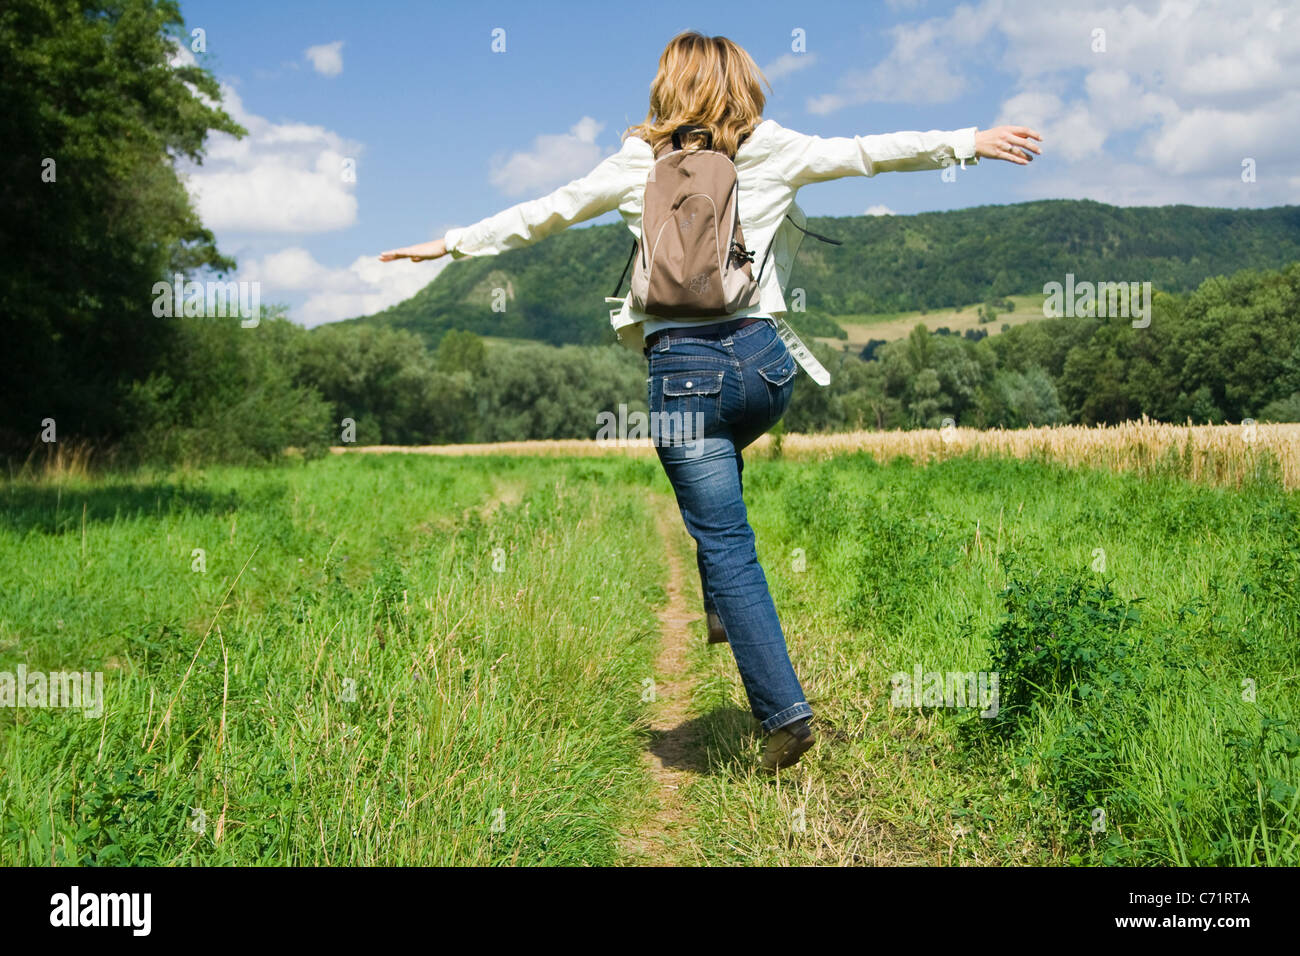 Frolicking woman, jumping for joy - Stock Image